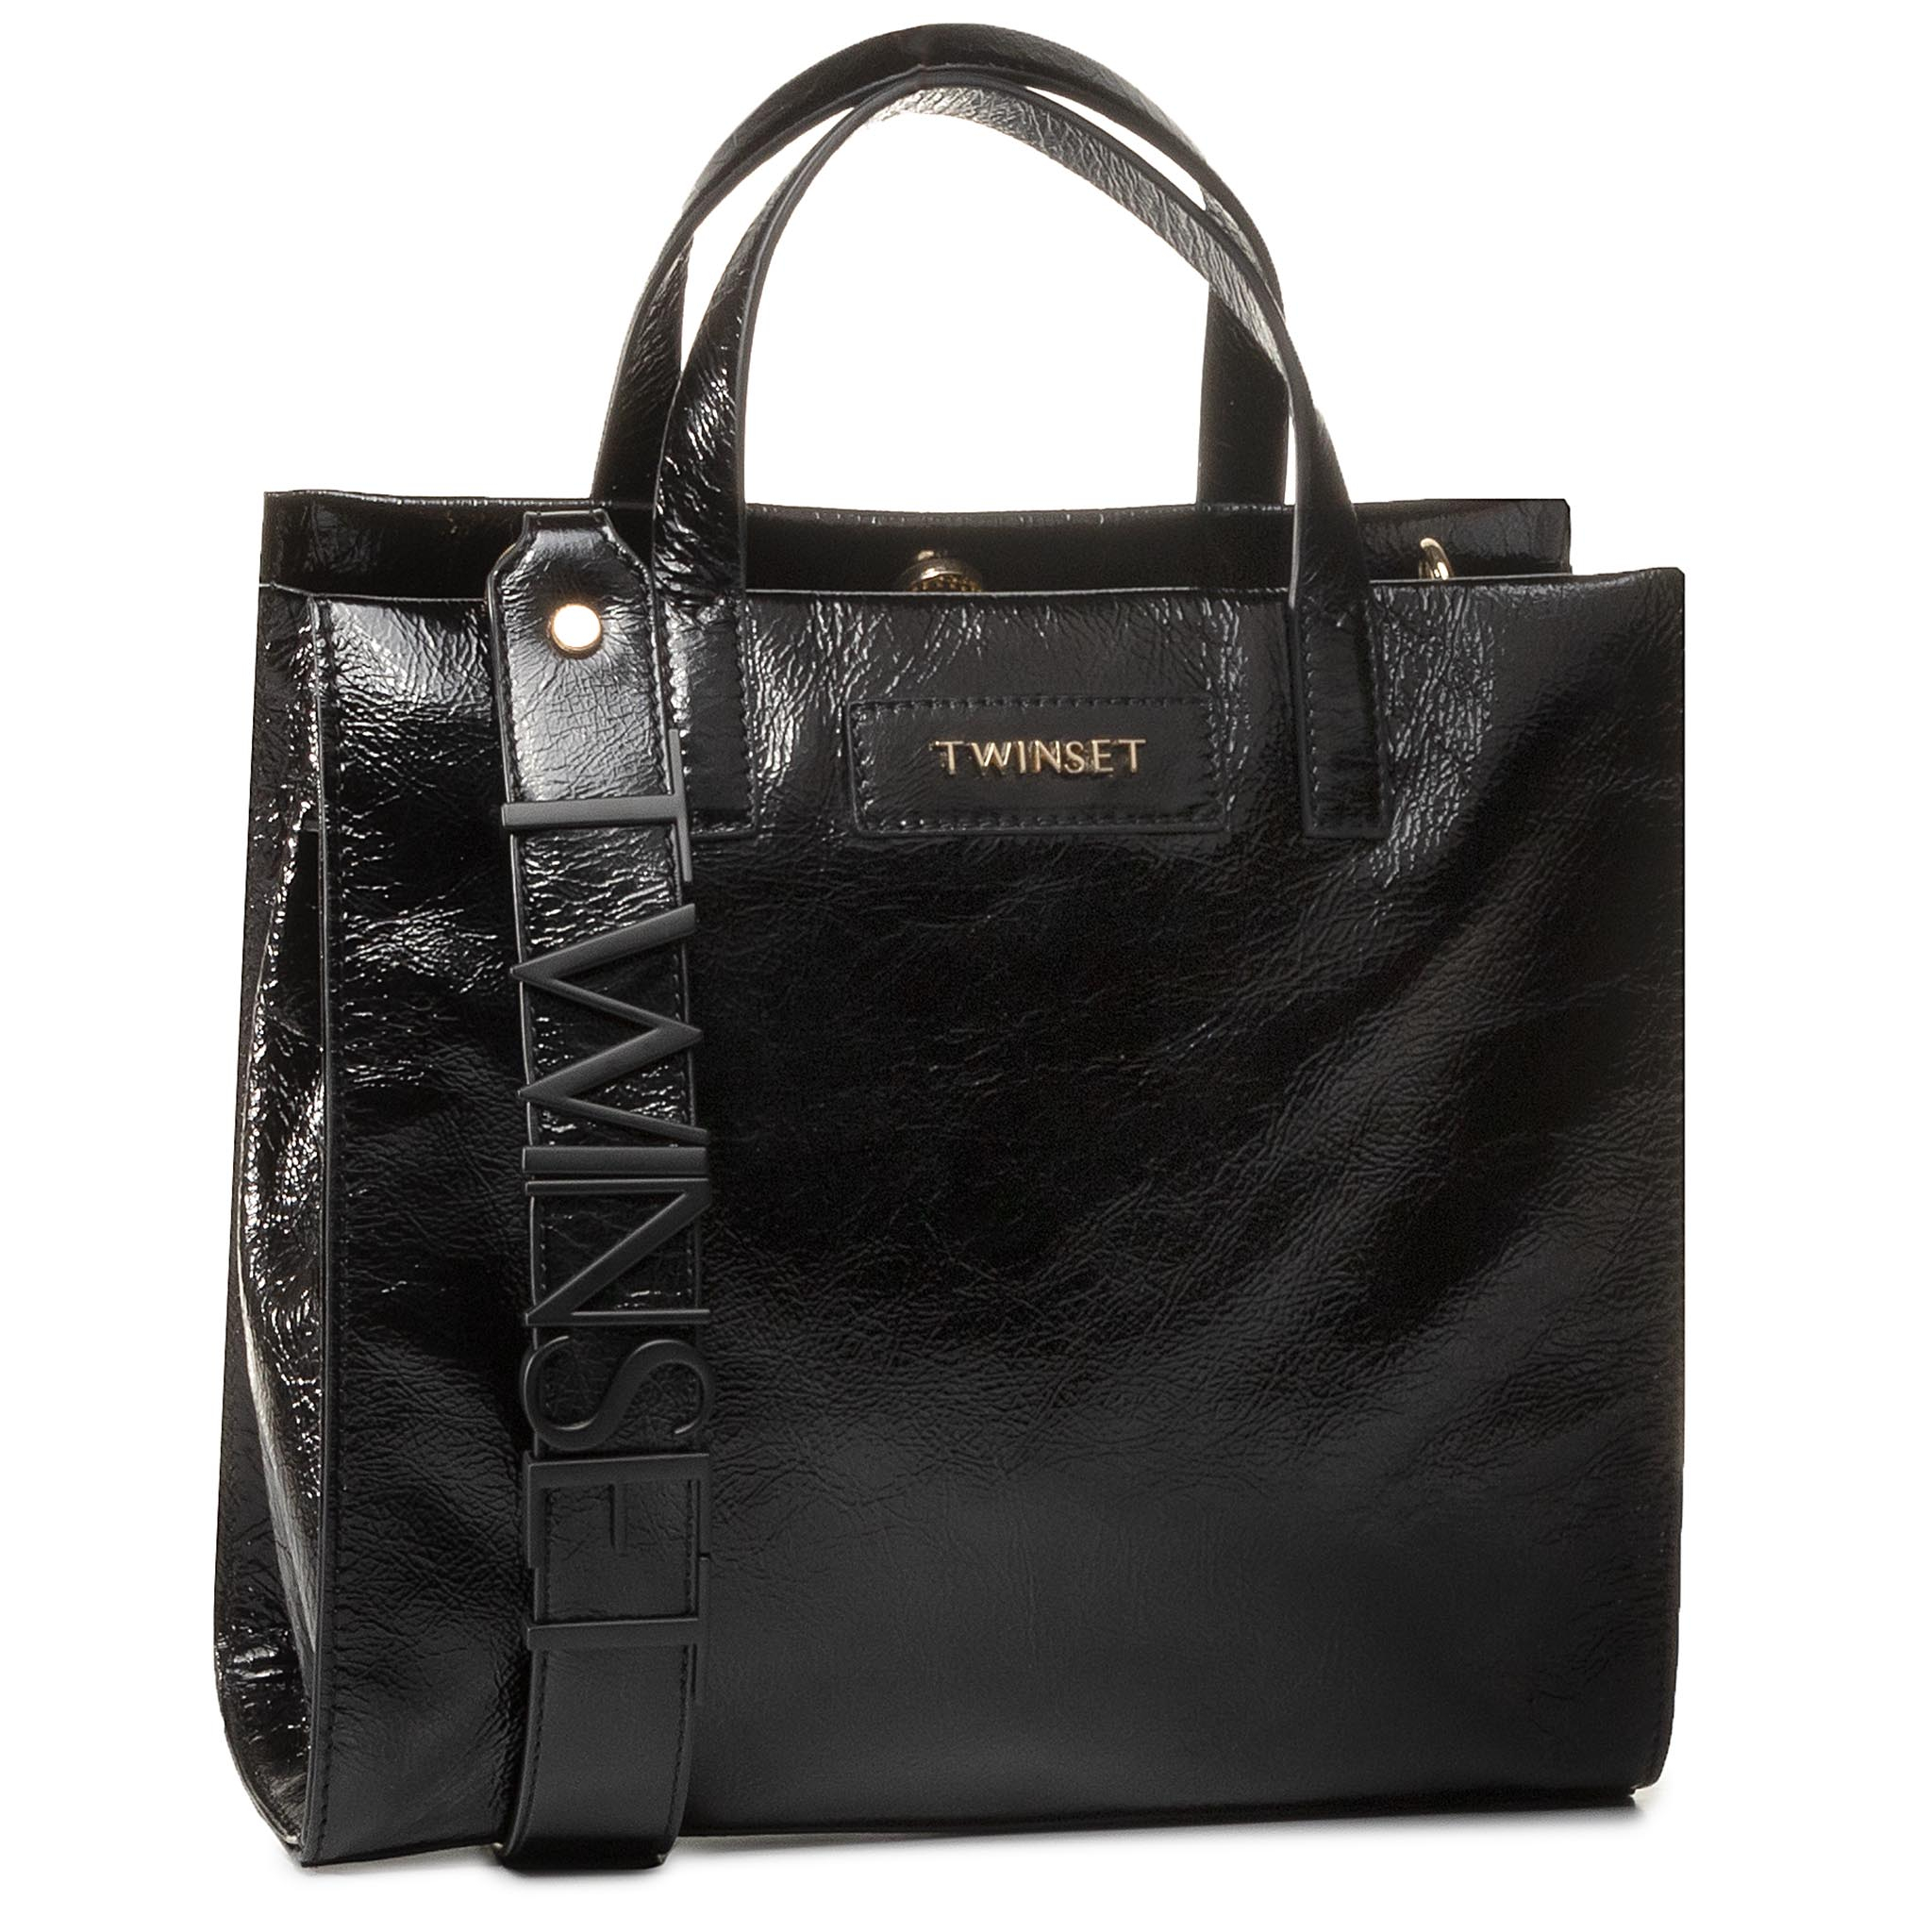 Geantă TWINSET - Tote 201TO8091 Nero 00006